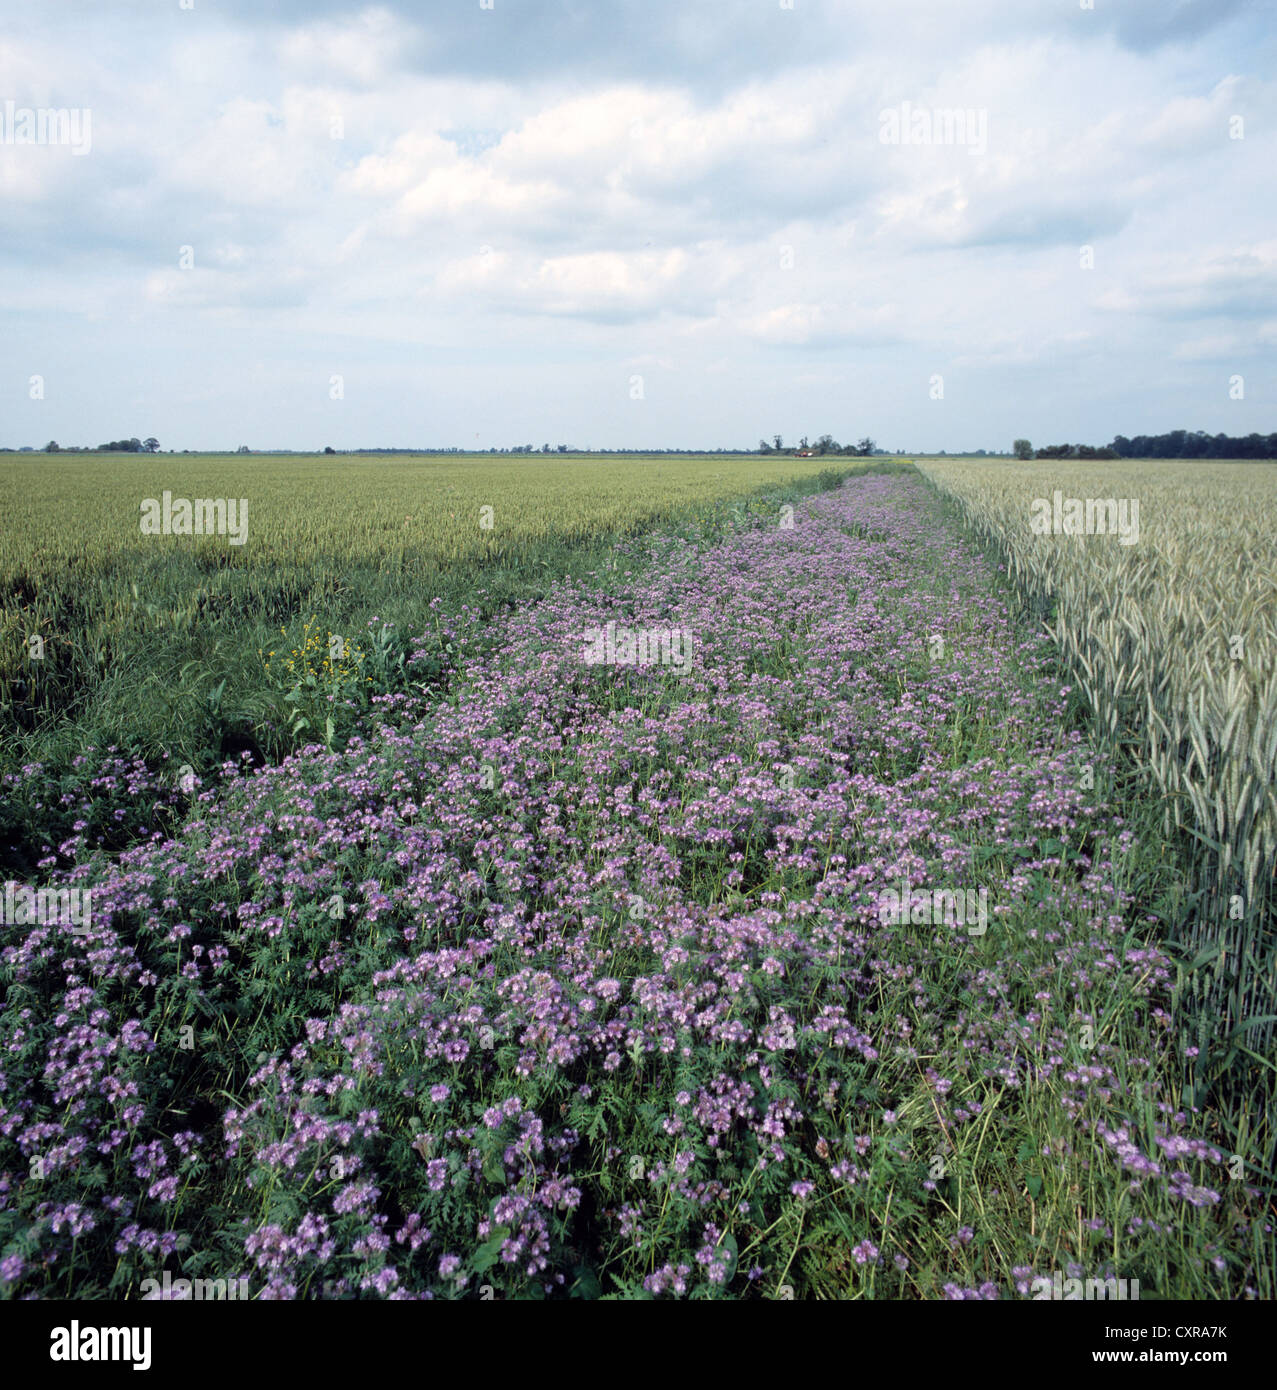 Phacelia in flower in field conservervation bank between two cereal crops. - Stock Image